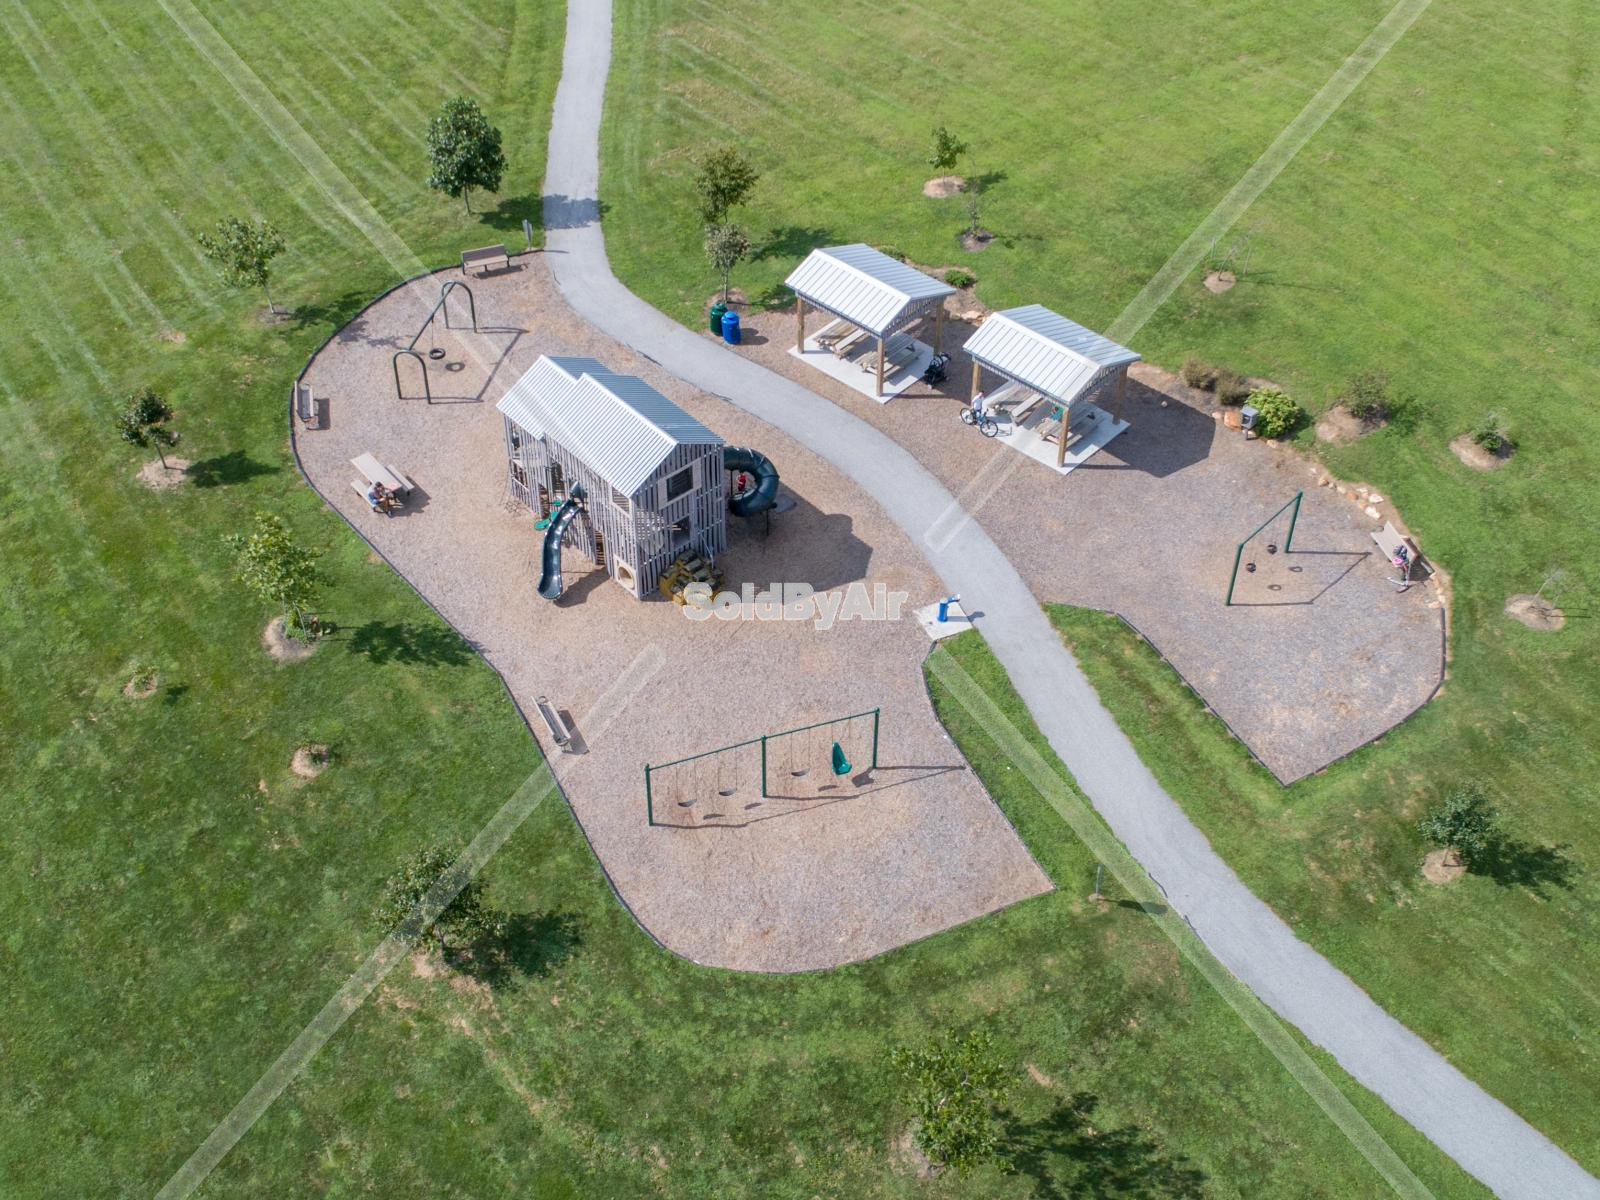 Drone Photo of Goddard Park Playground in West Grove Pennsylvania